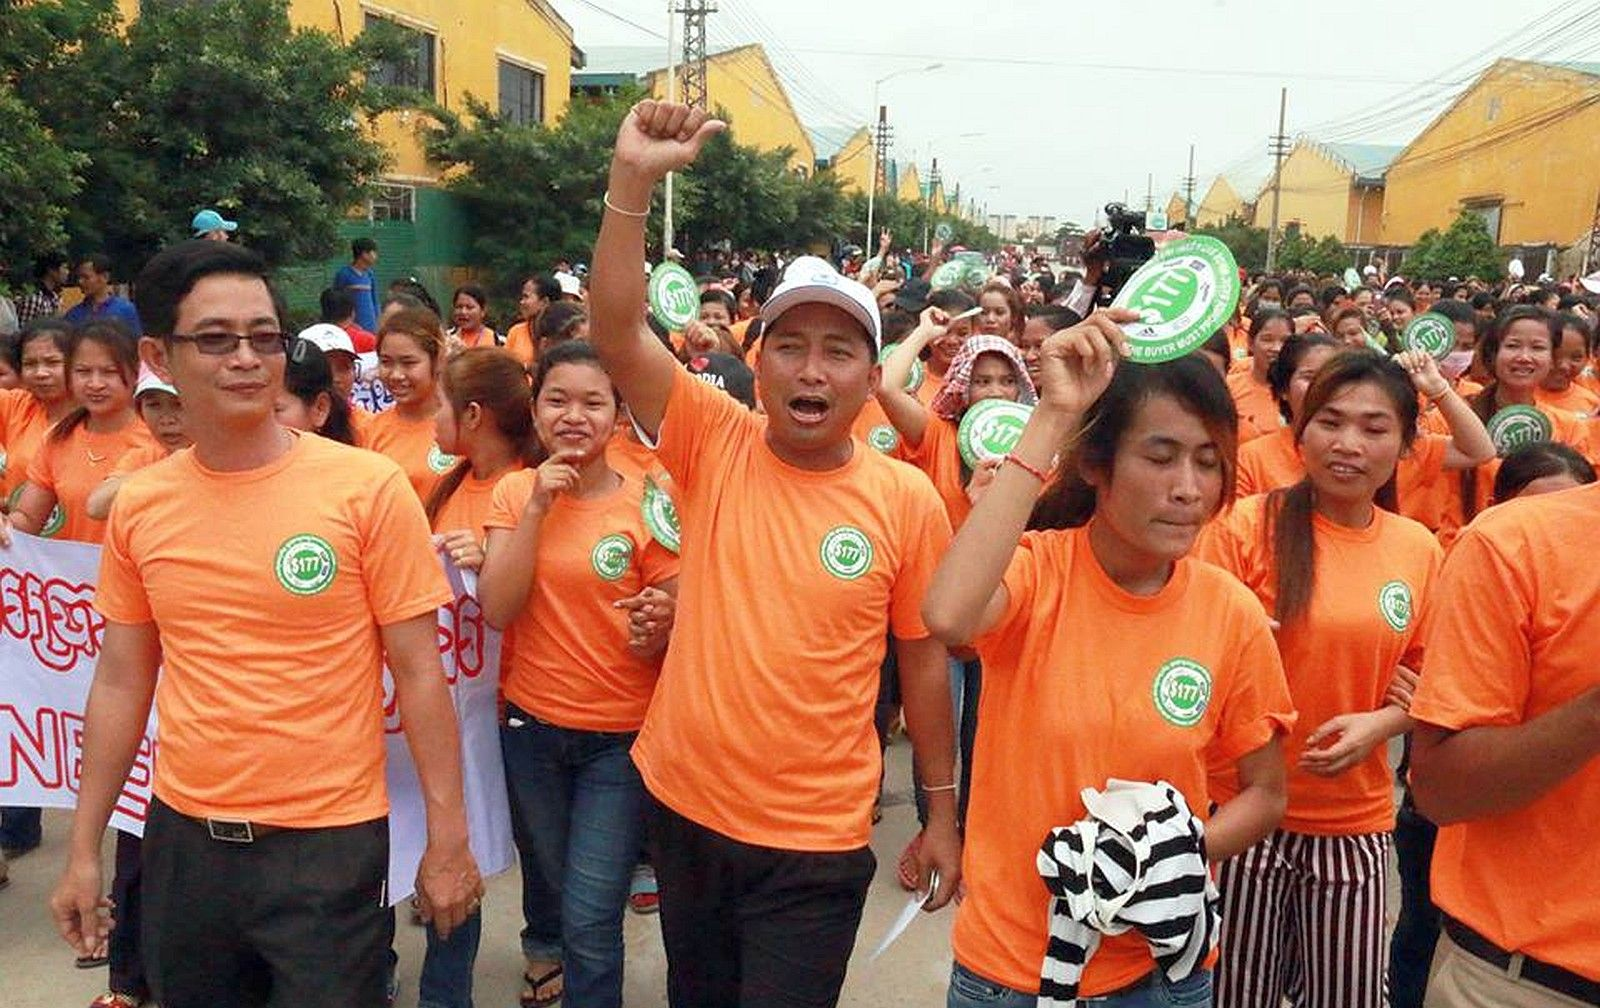 """Top News: """"CAMBODIA: Ath Thorn Demands Decent Wages For Workers"""" - http://www.politicoscope.com/wp-content/uploads/2015/10/Cambodia-Headline-News-Cambodia-wage-protests-C.CAWDU-leader-Ath-Thorn-leads-workers-1600x1008.jpg - """"The campaign calls on government, employers and buyers to provide decent wages to workers and to mark the World Day for Decent Work,"""" he told reporters.  on Politicoscope - http://www.politicoscope.com/cambodia-ath-thorn-demands-decent-wages-for-workers/."""